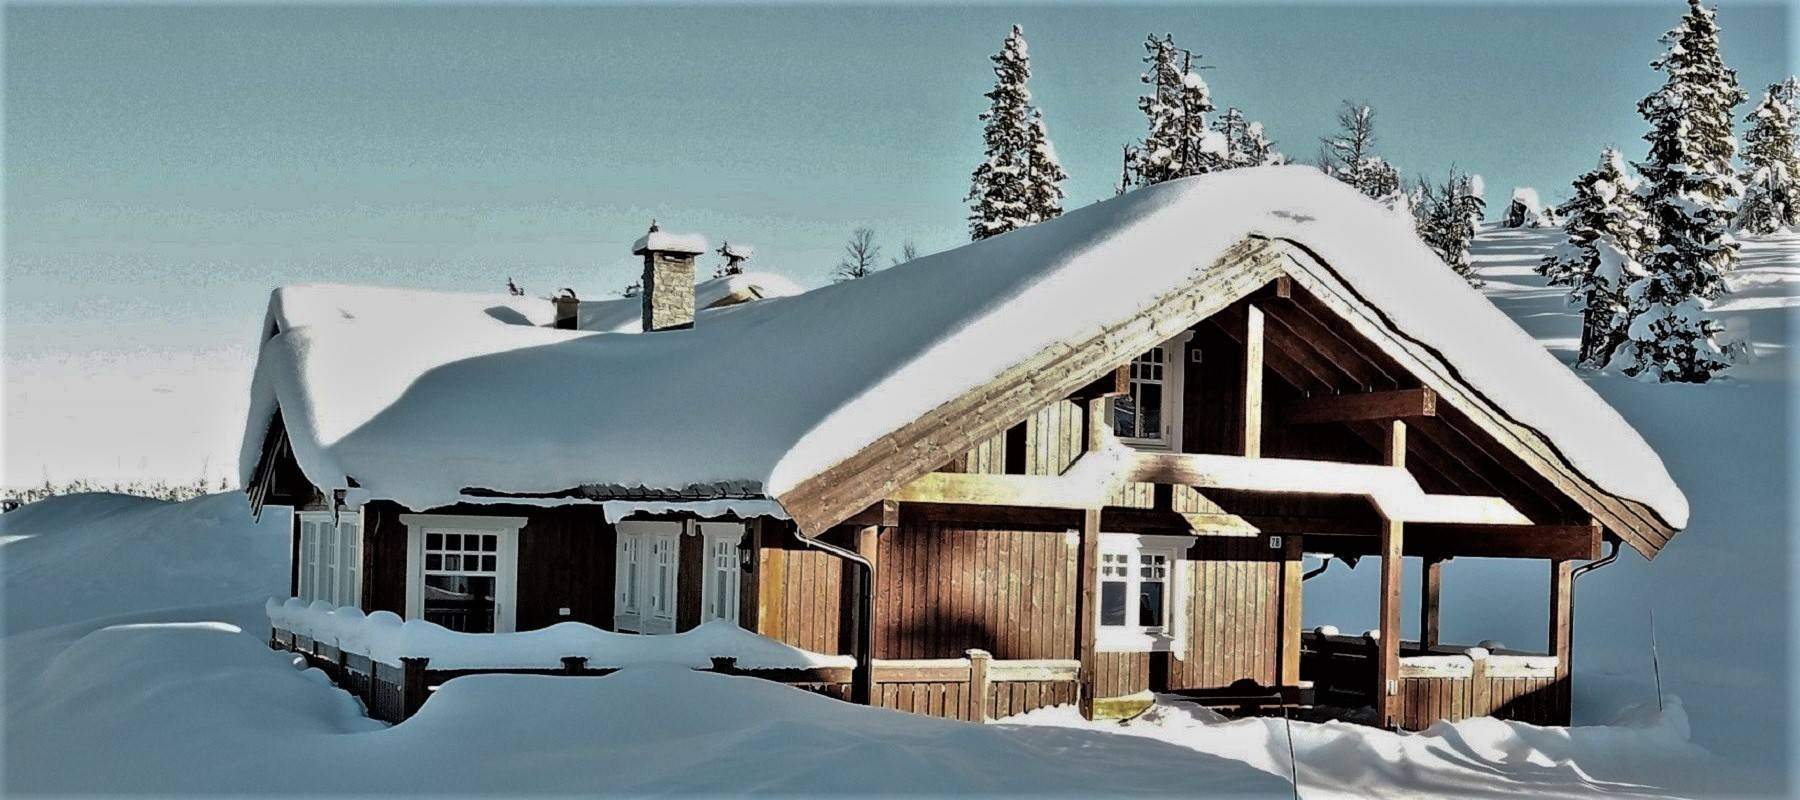 112 Hyttemodell Trysil 110A